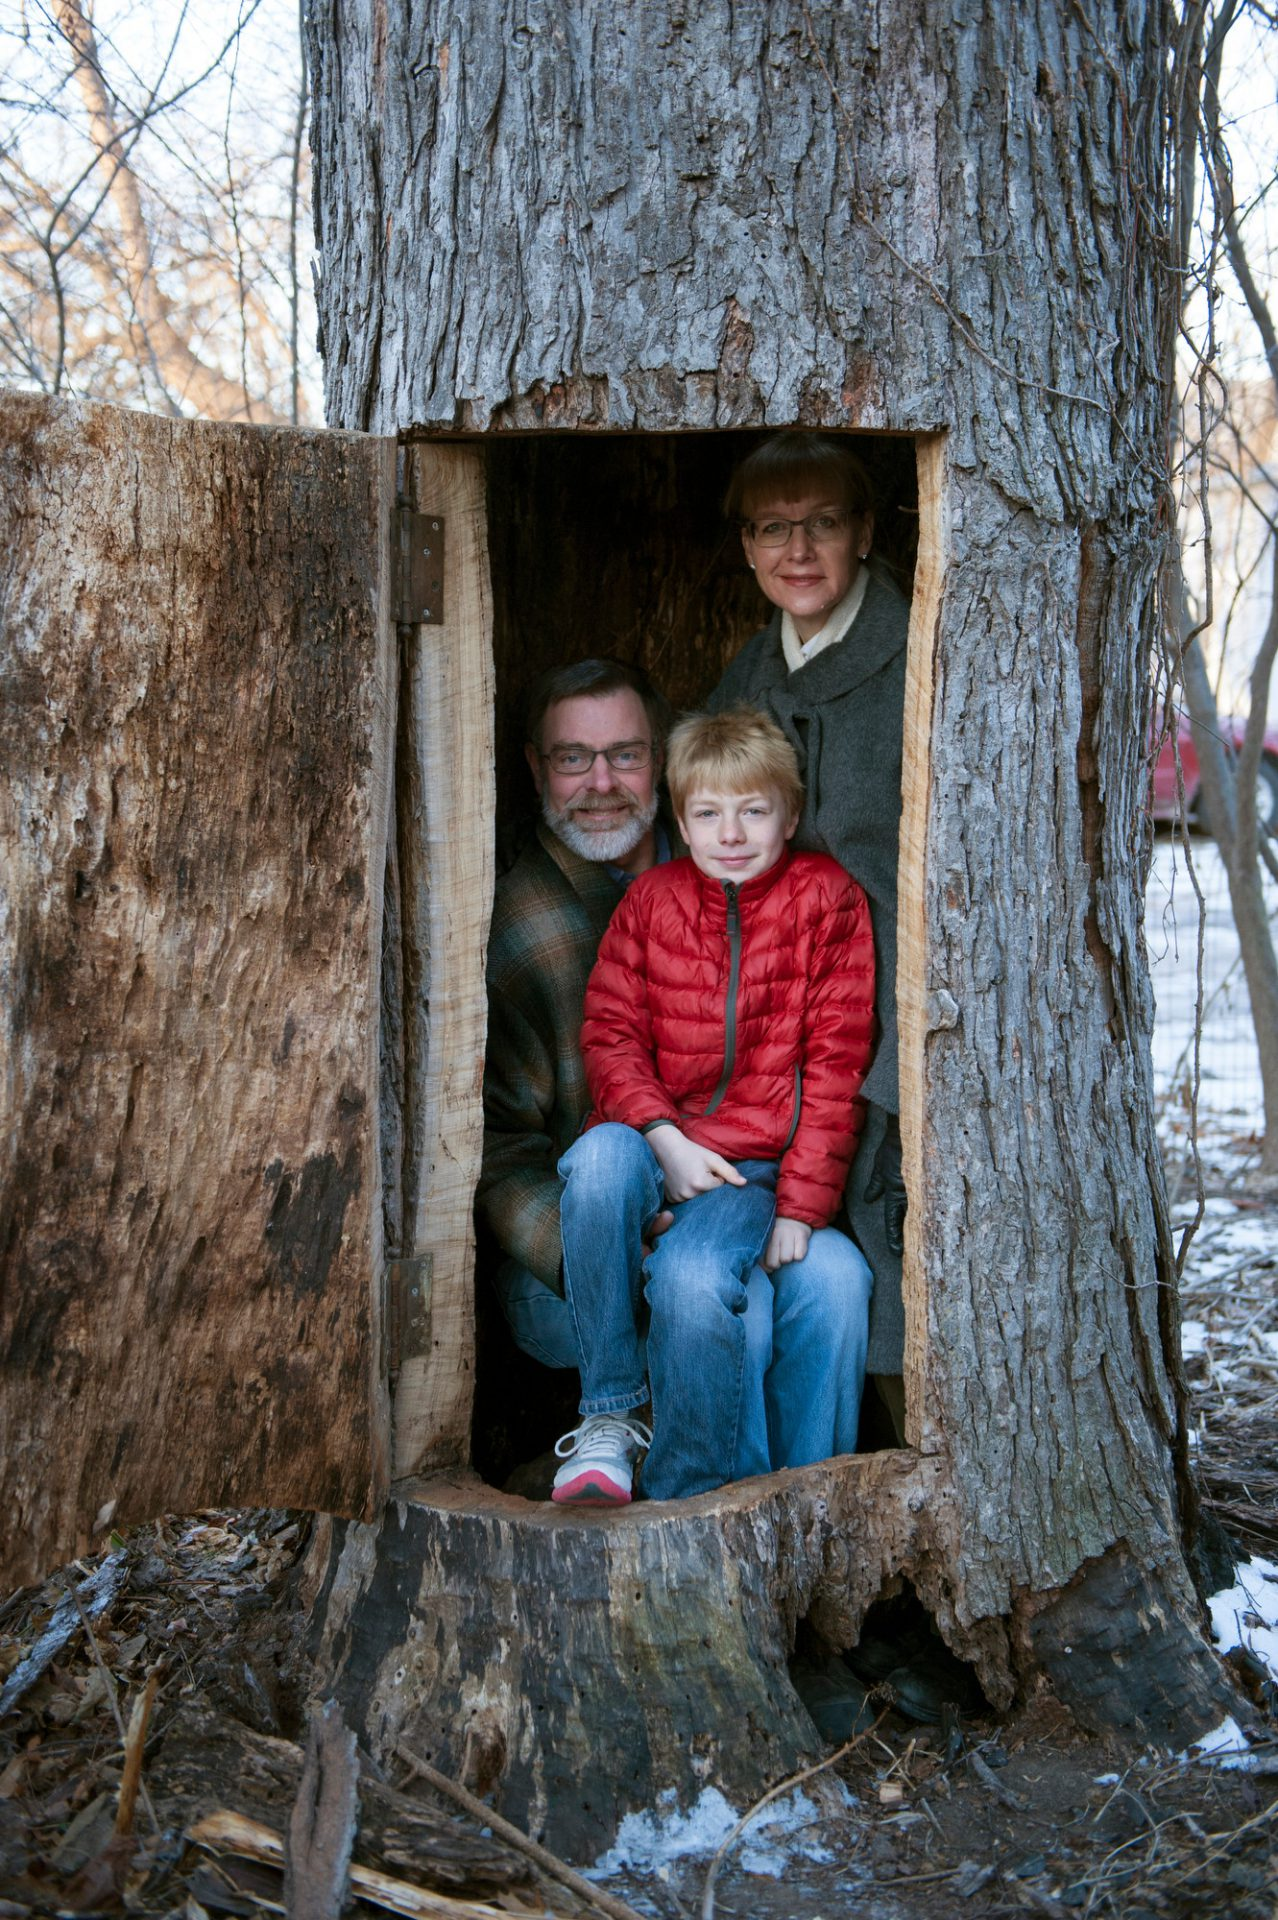 Photo: A family sits inside of a hollowed out tree in Lincoln, Nebraska.